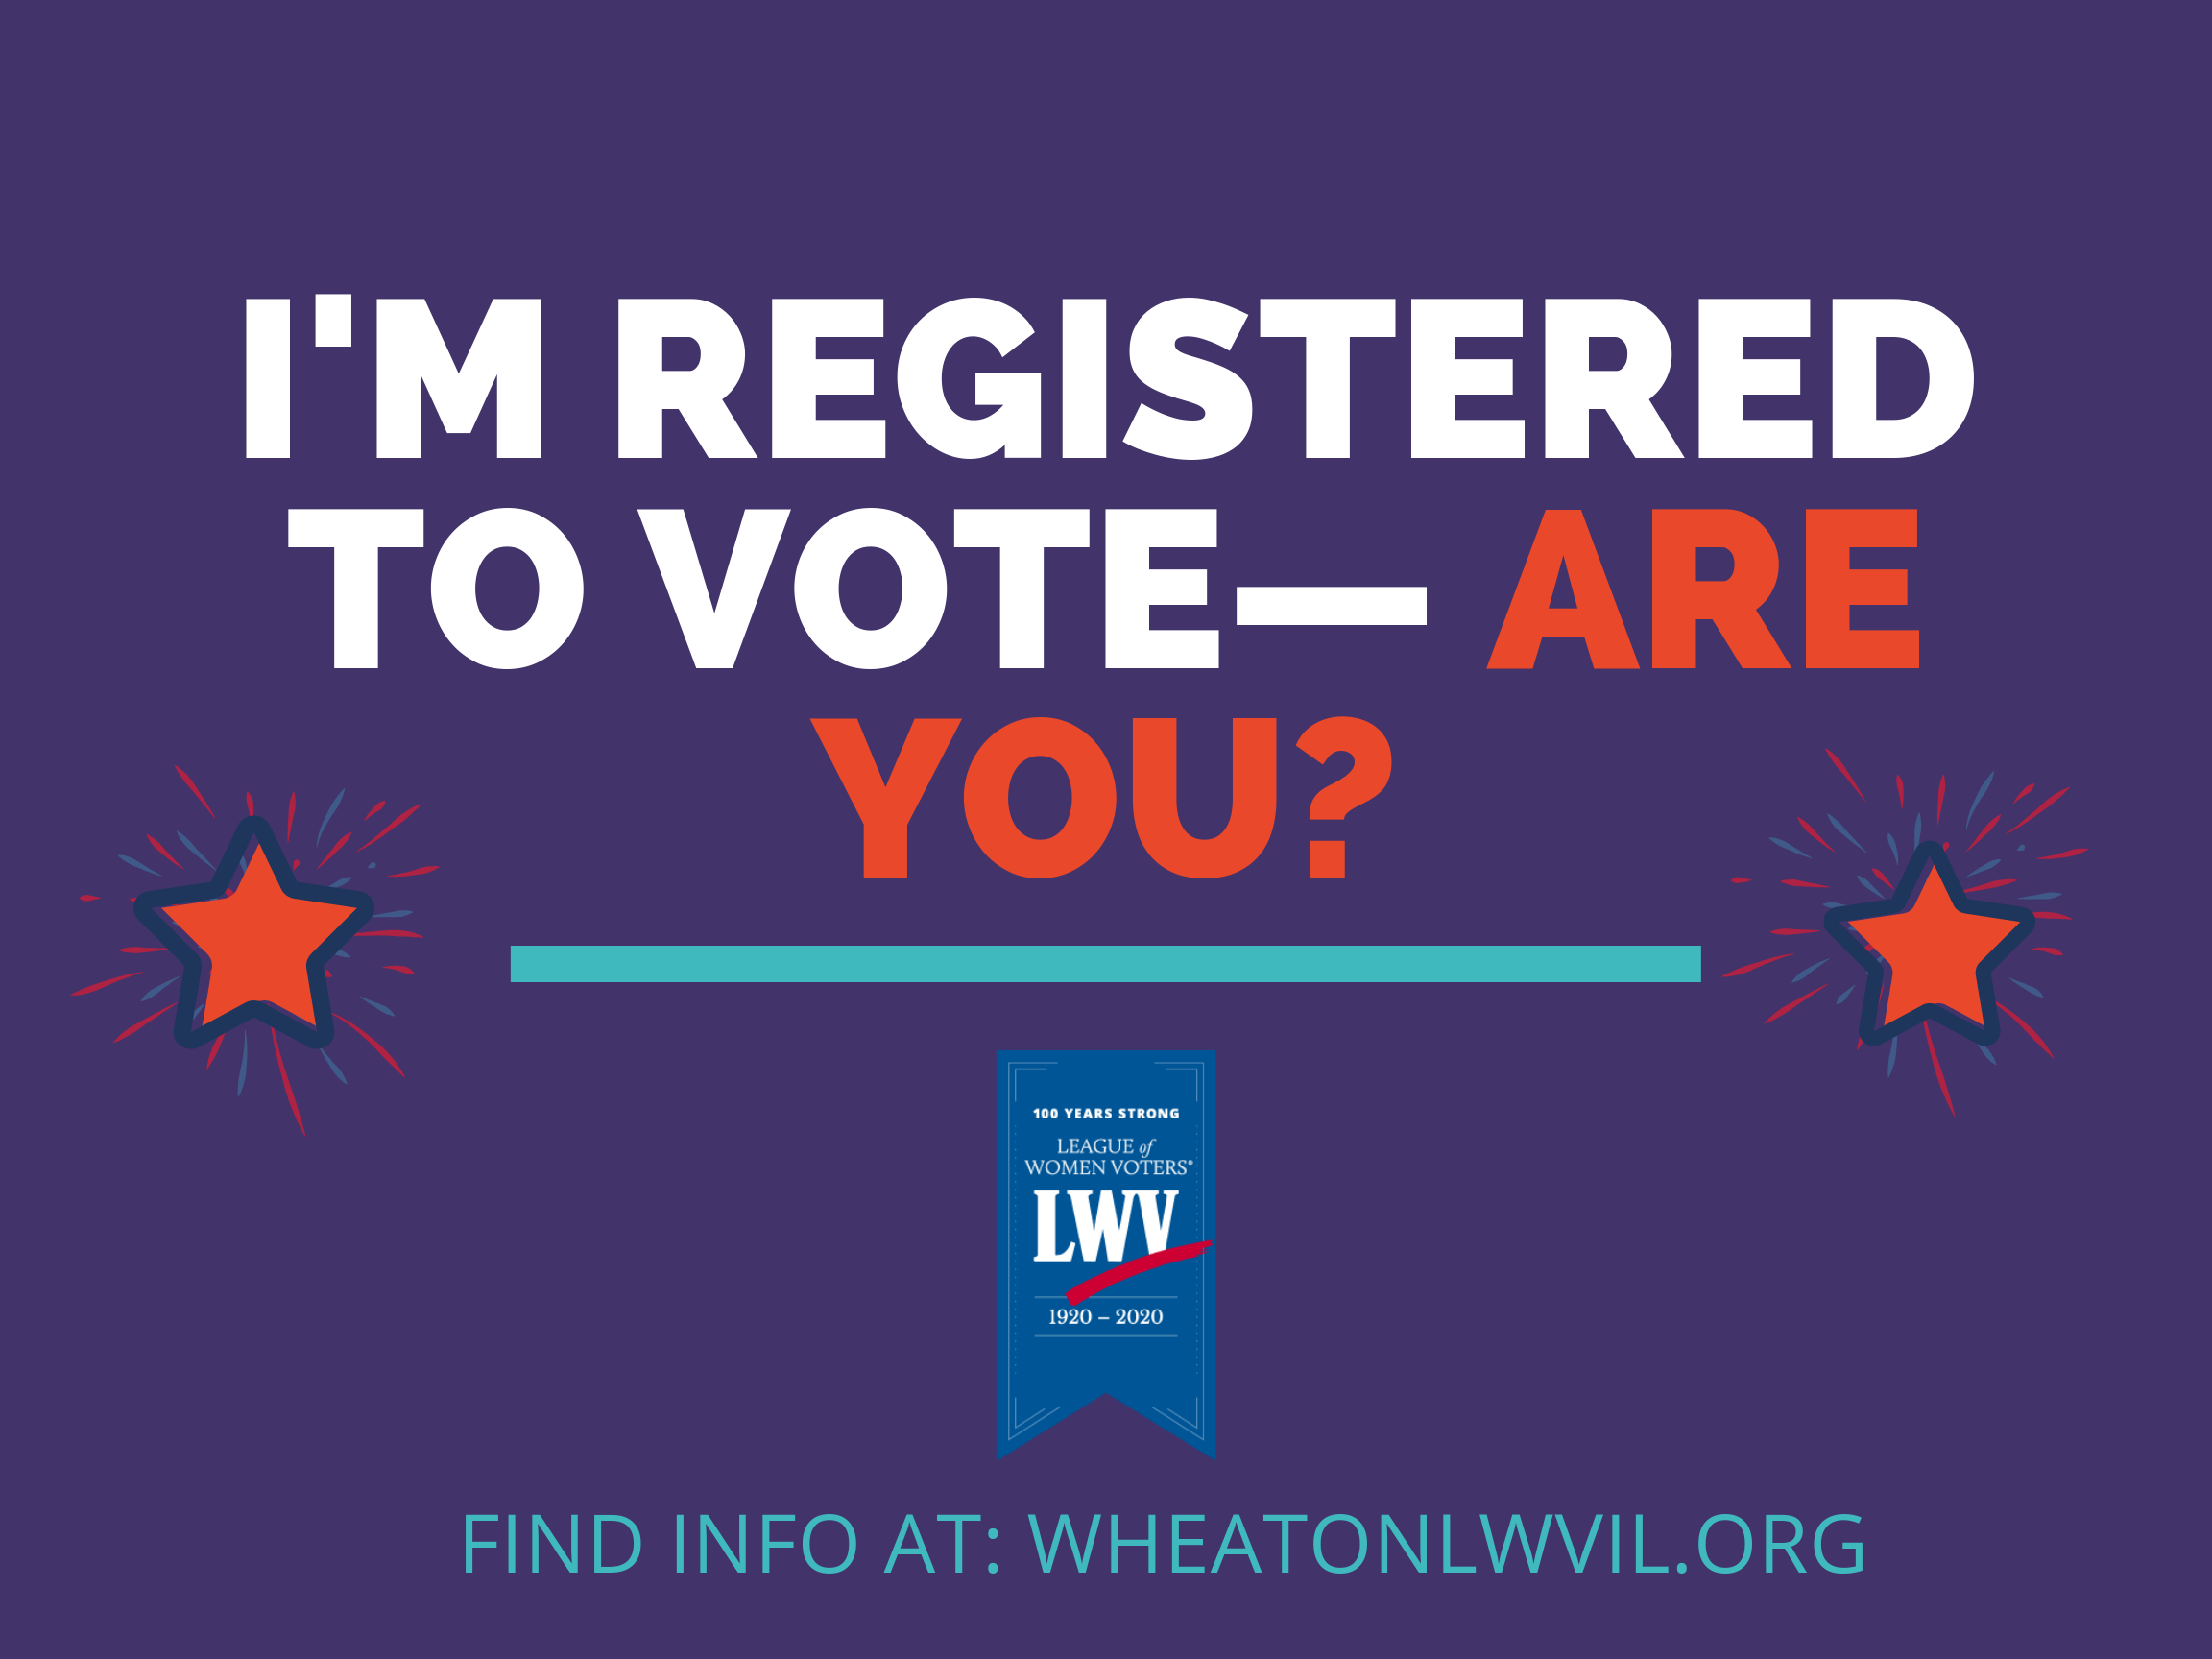 I am registered to vote. Are you?